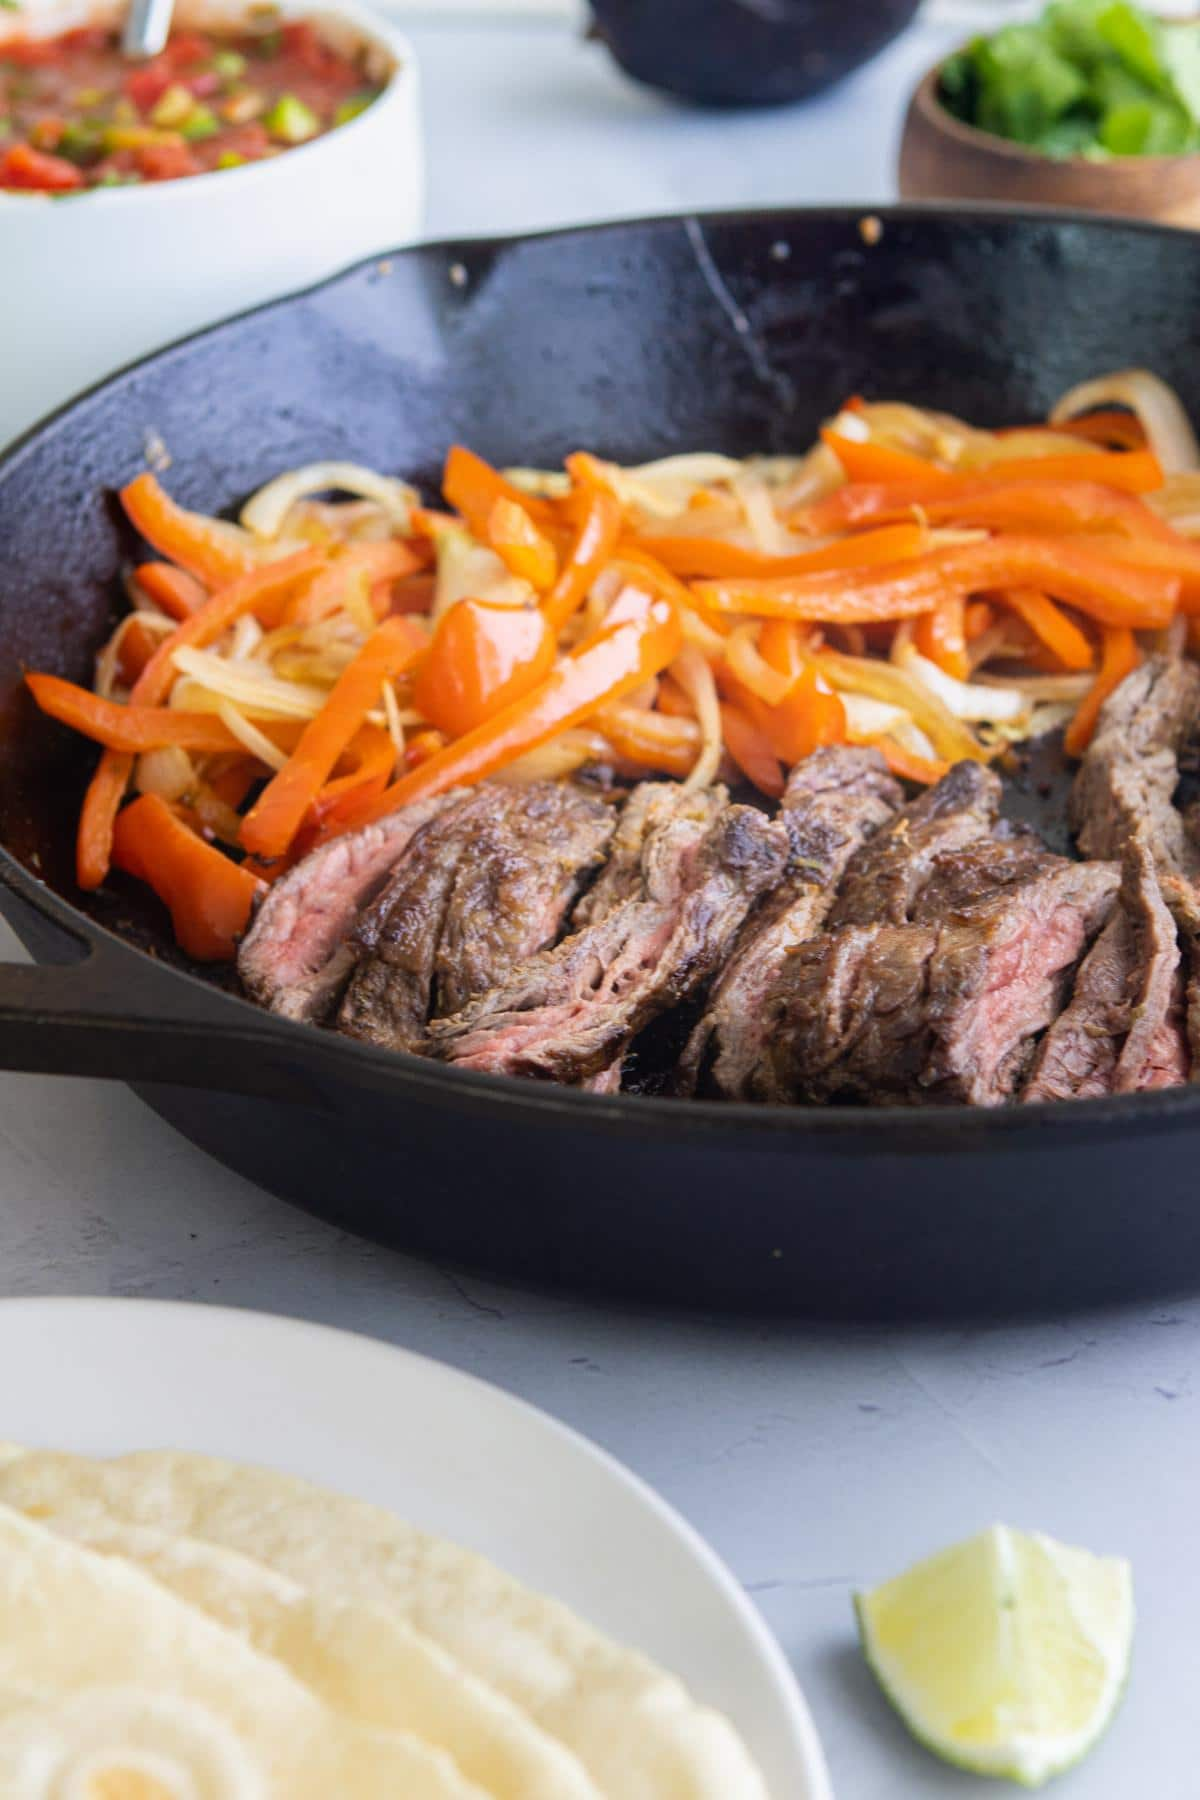 sliced steak, red bell peppers, and onions on a cast iron skillet